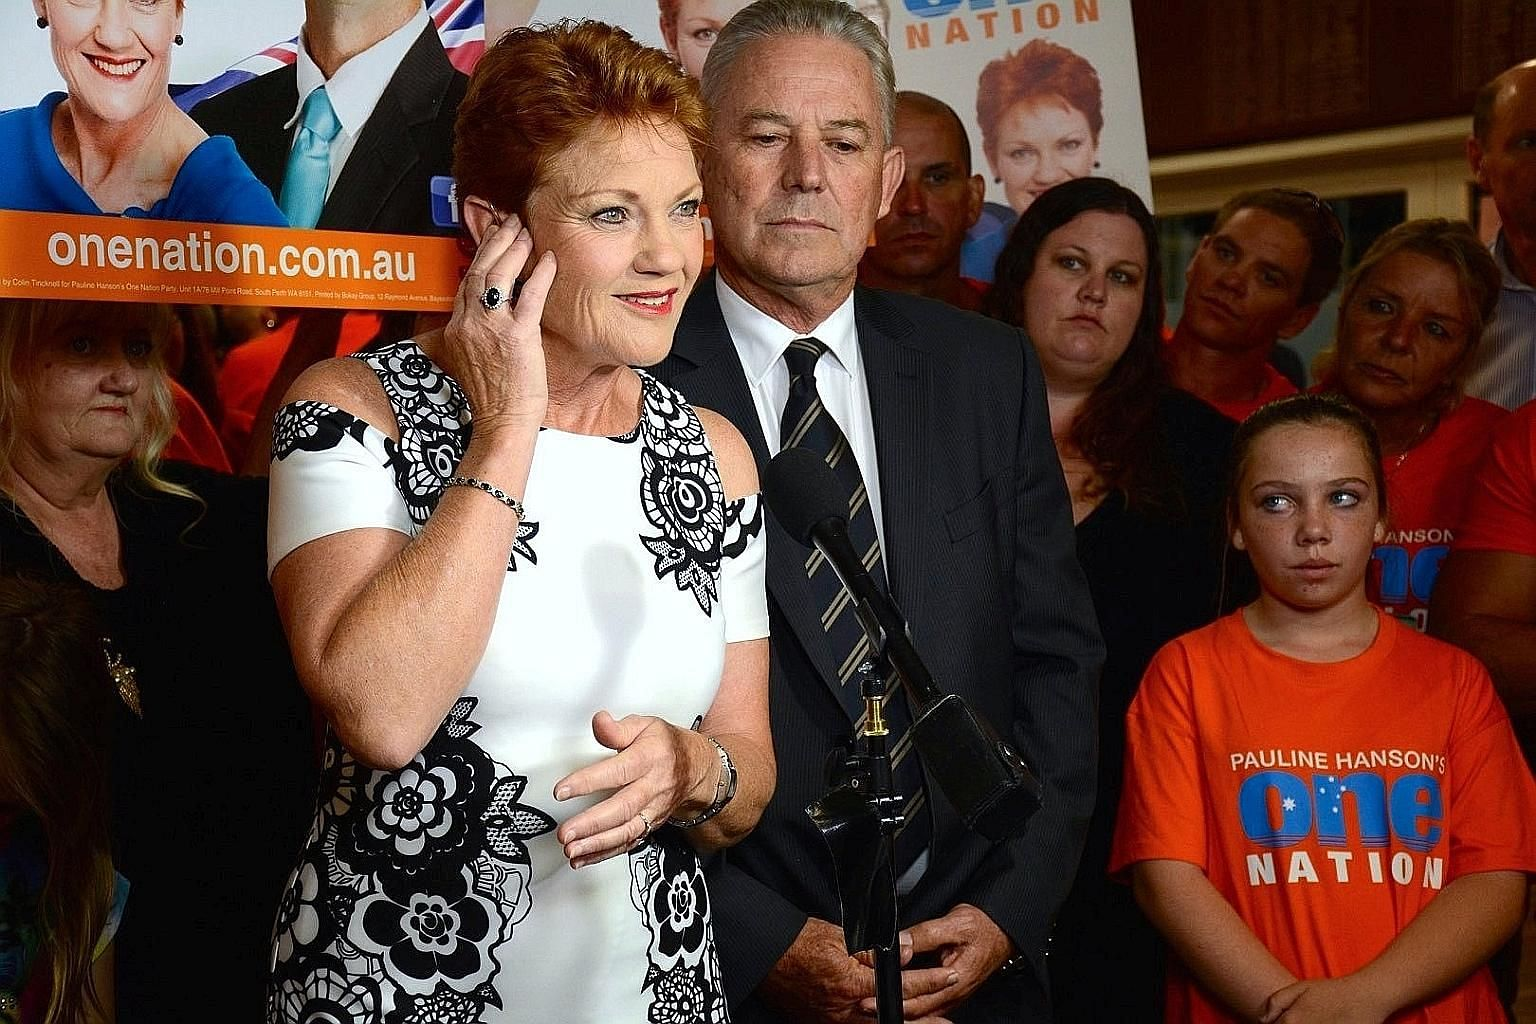 """One Nation leader Pauline Hanson (above) was an autocratic leader who ousted anyone who disagreed with her decisions, Senator Brian Burston claimed, adding that the party should be renamed """"Gone Nation""""."""